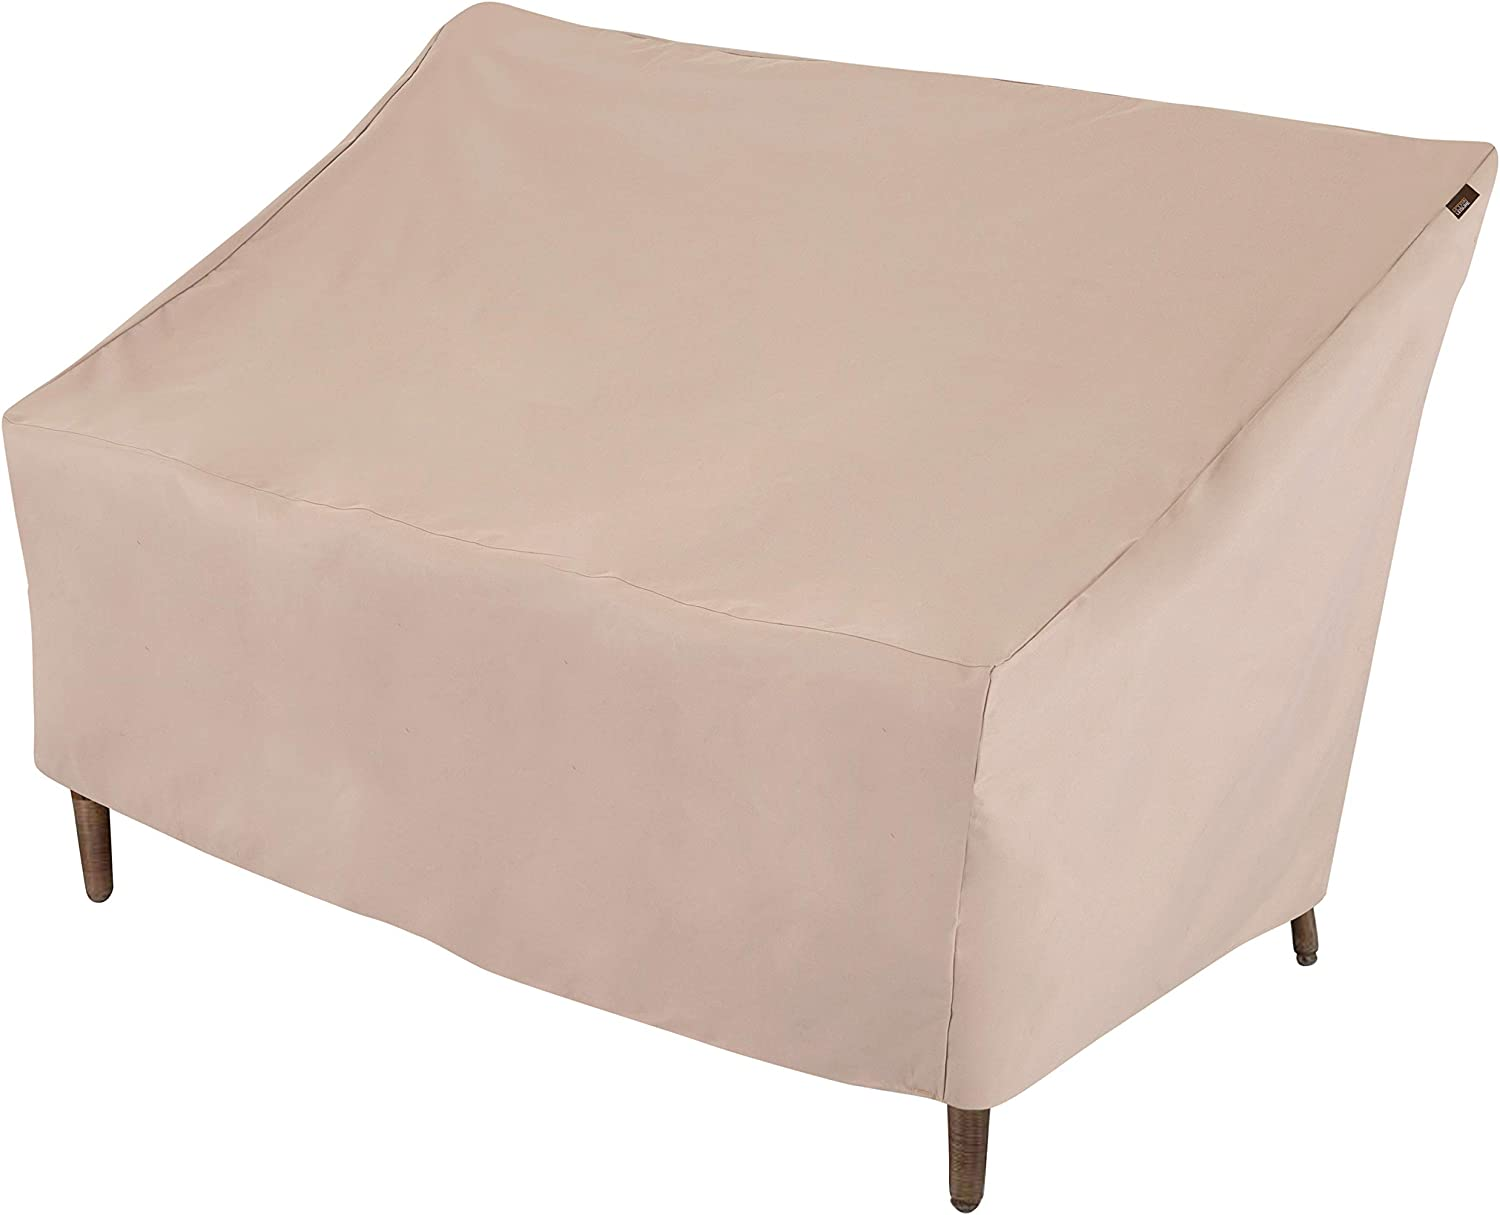 Modern Leisure 2929 Chalet Patio Love Seat Cover (57.5 L D x 38 H inches) Water-Resistant, Large, Khaki/Fossil